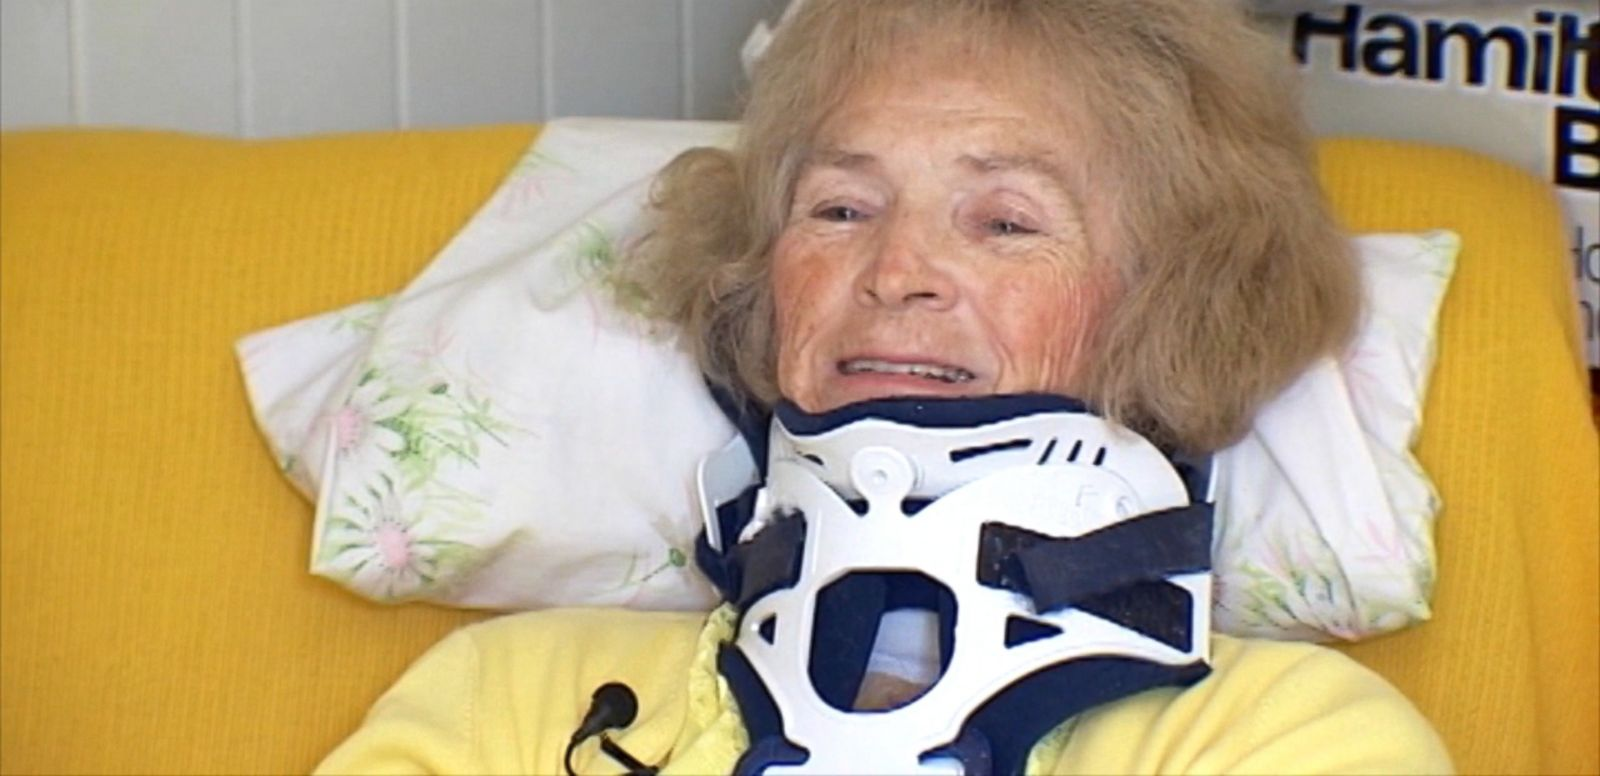 An accident in 1995 took away Mary Ann Franco's sight and a different kind of accident has apparently brought it back.